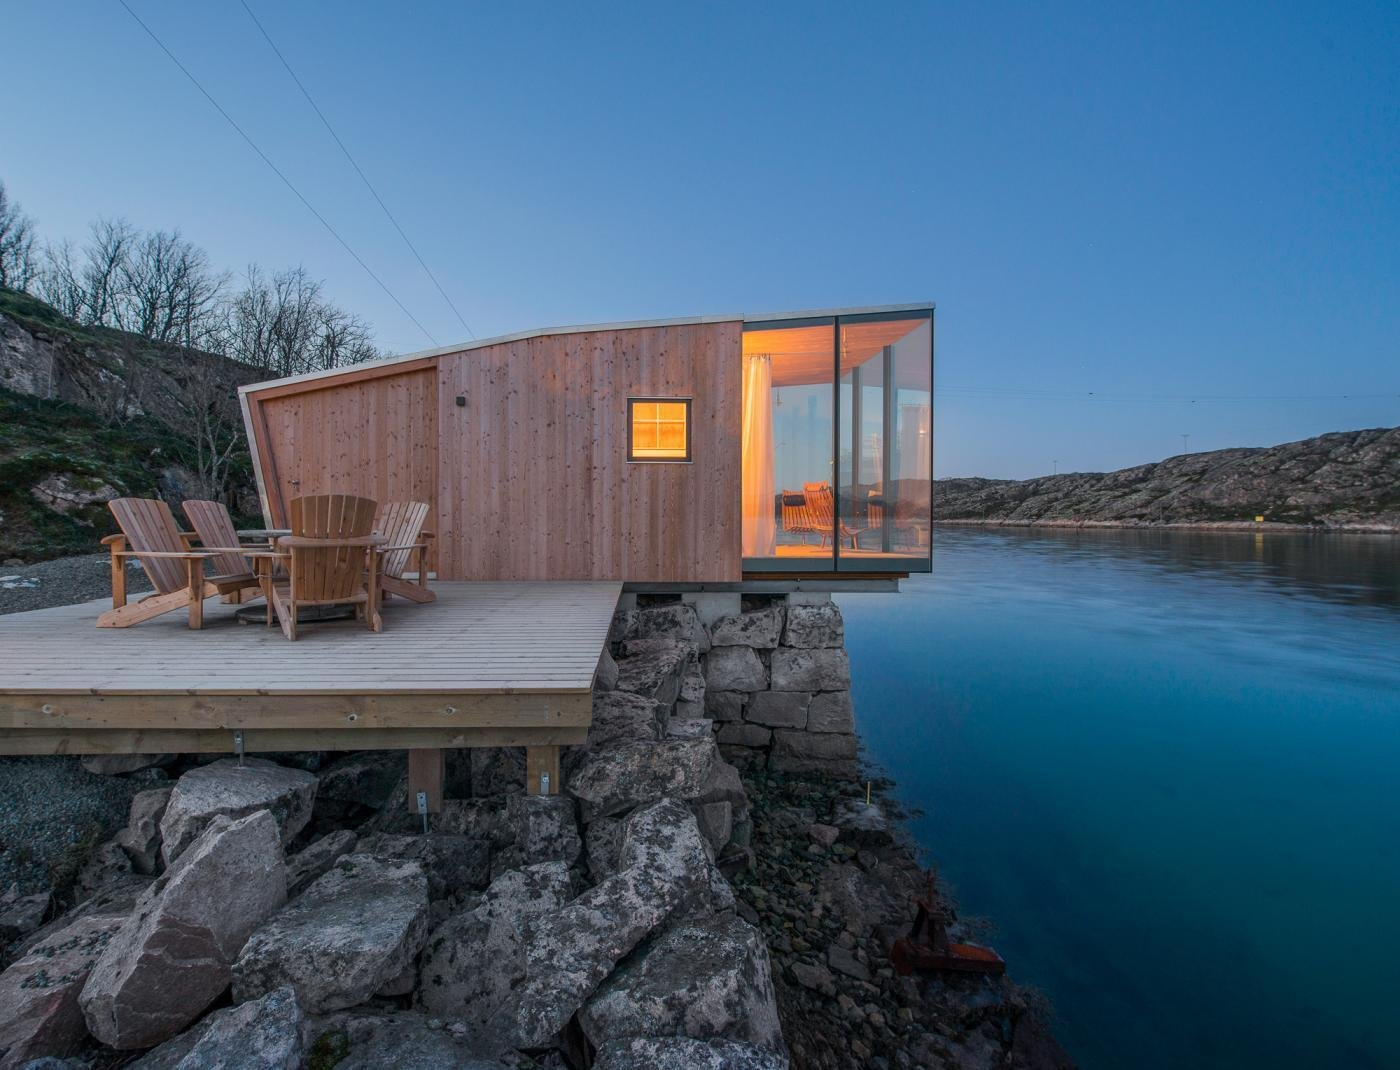 The cabins are made up of two layers of wood construction. The exterior layer is made of Larch wood with a custom glazing. Tagged: Small Patio, Porch, Deck, Wood Patio, Porch, Deck, Exterior, Wood Siding Material, and House. Deck by Matthew Kersplatt Silvers